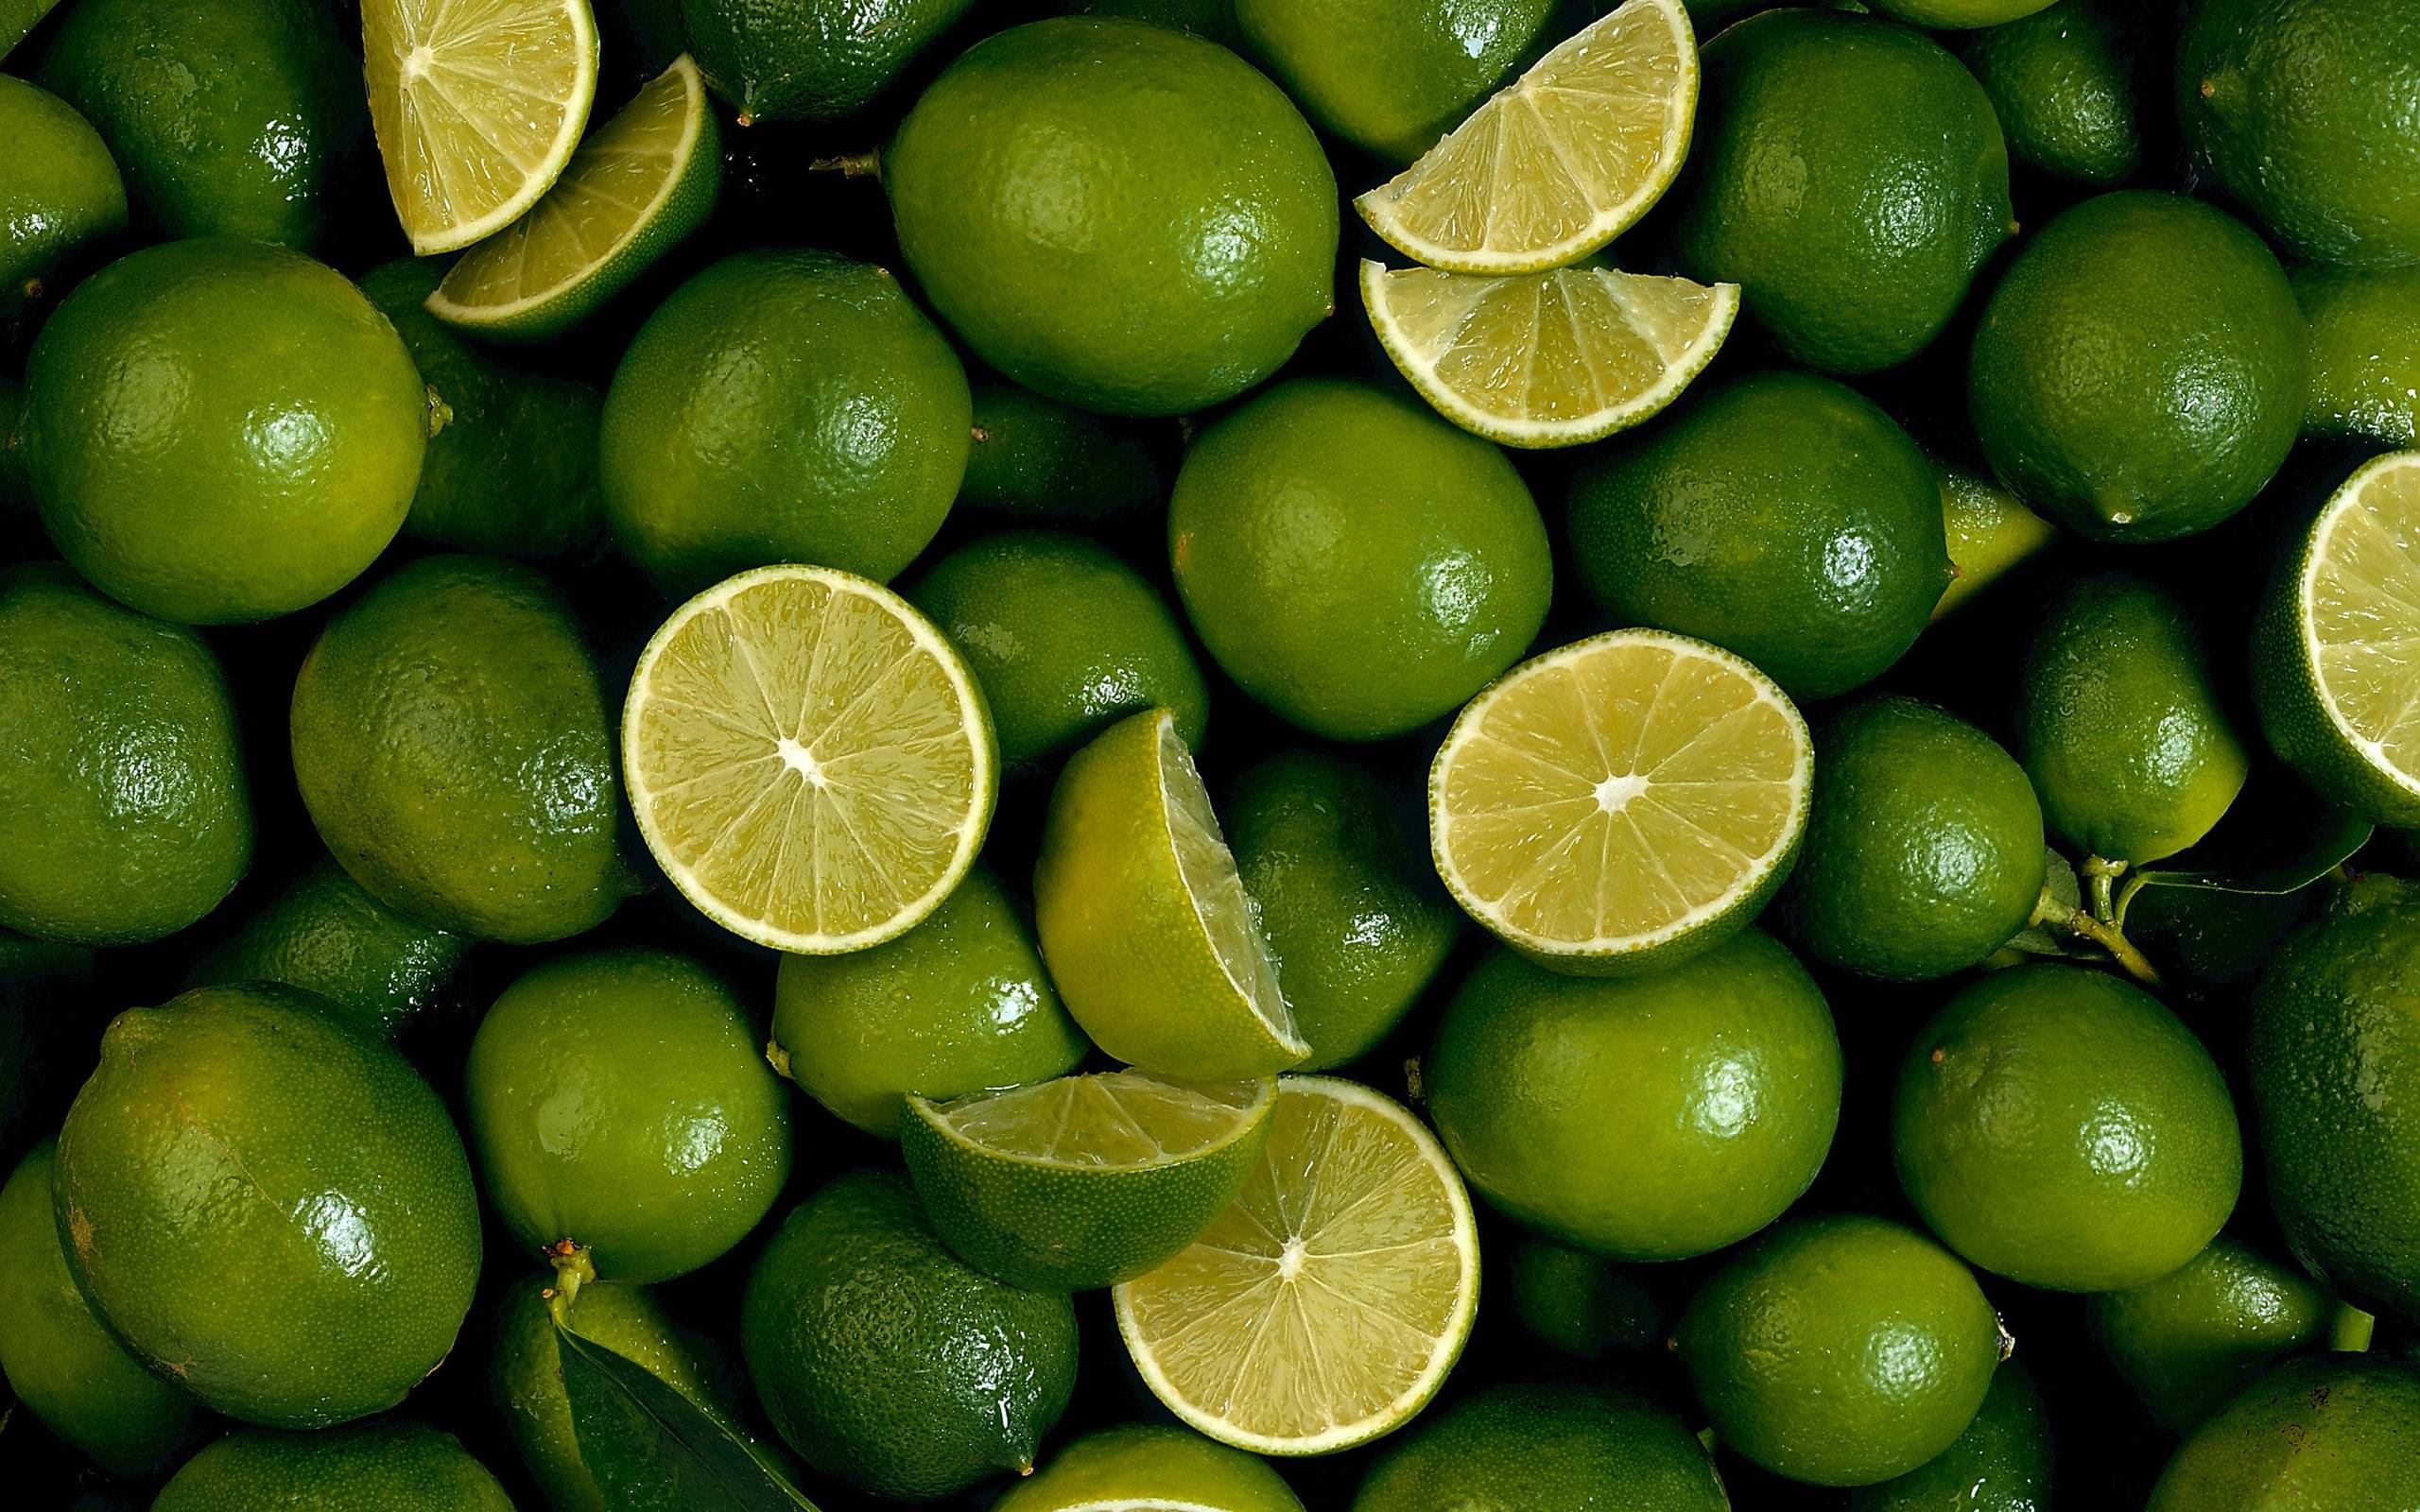 Lime Wallpapers - Wallpaper Cave